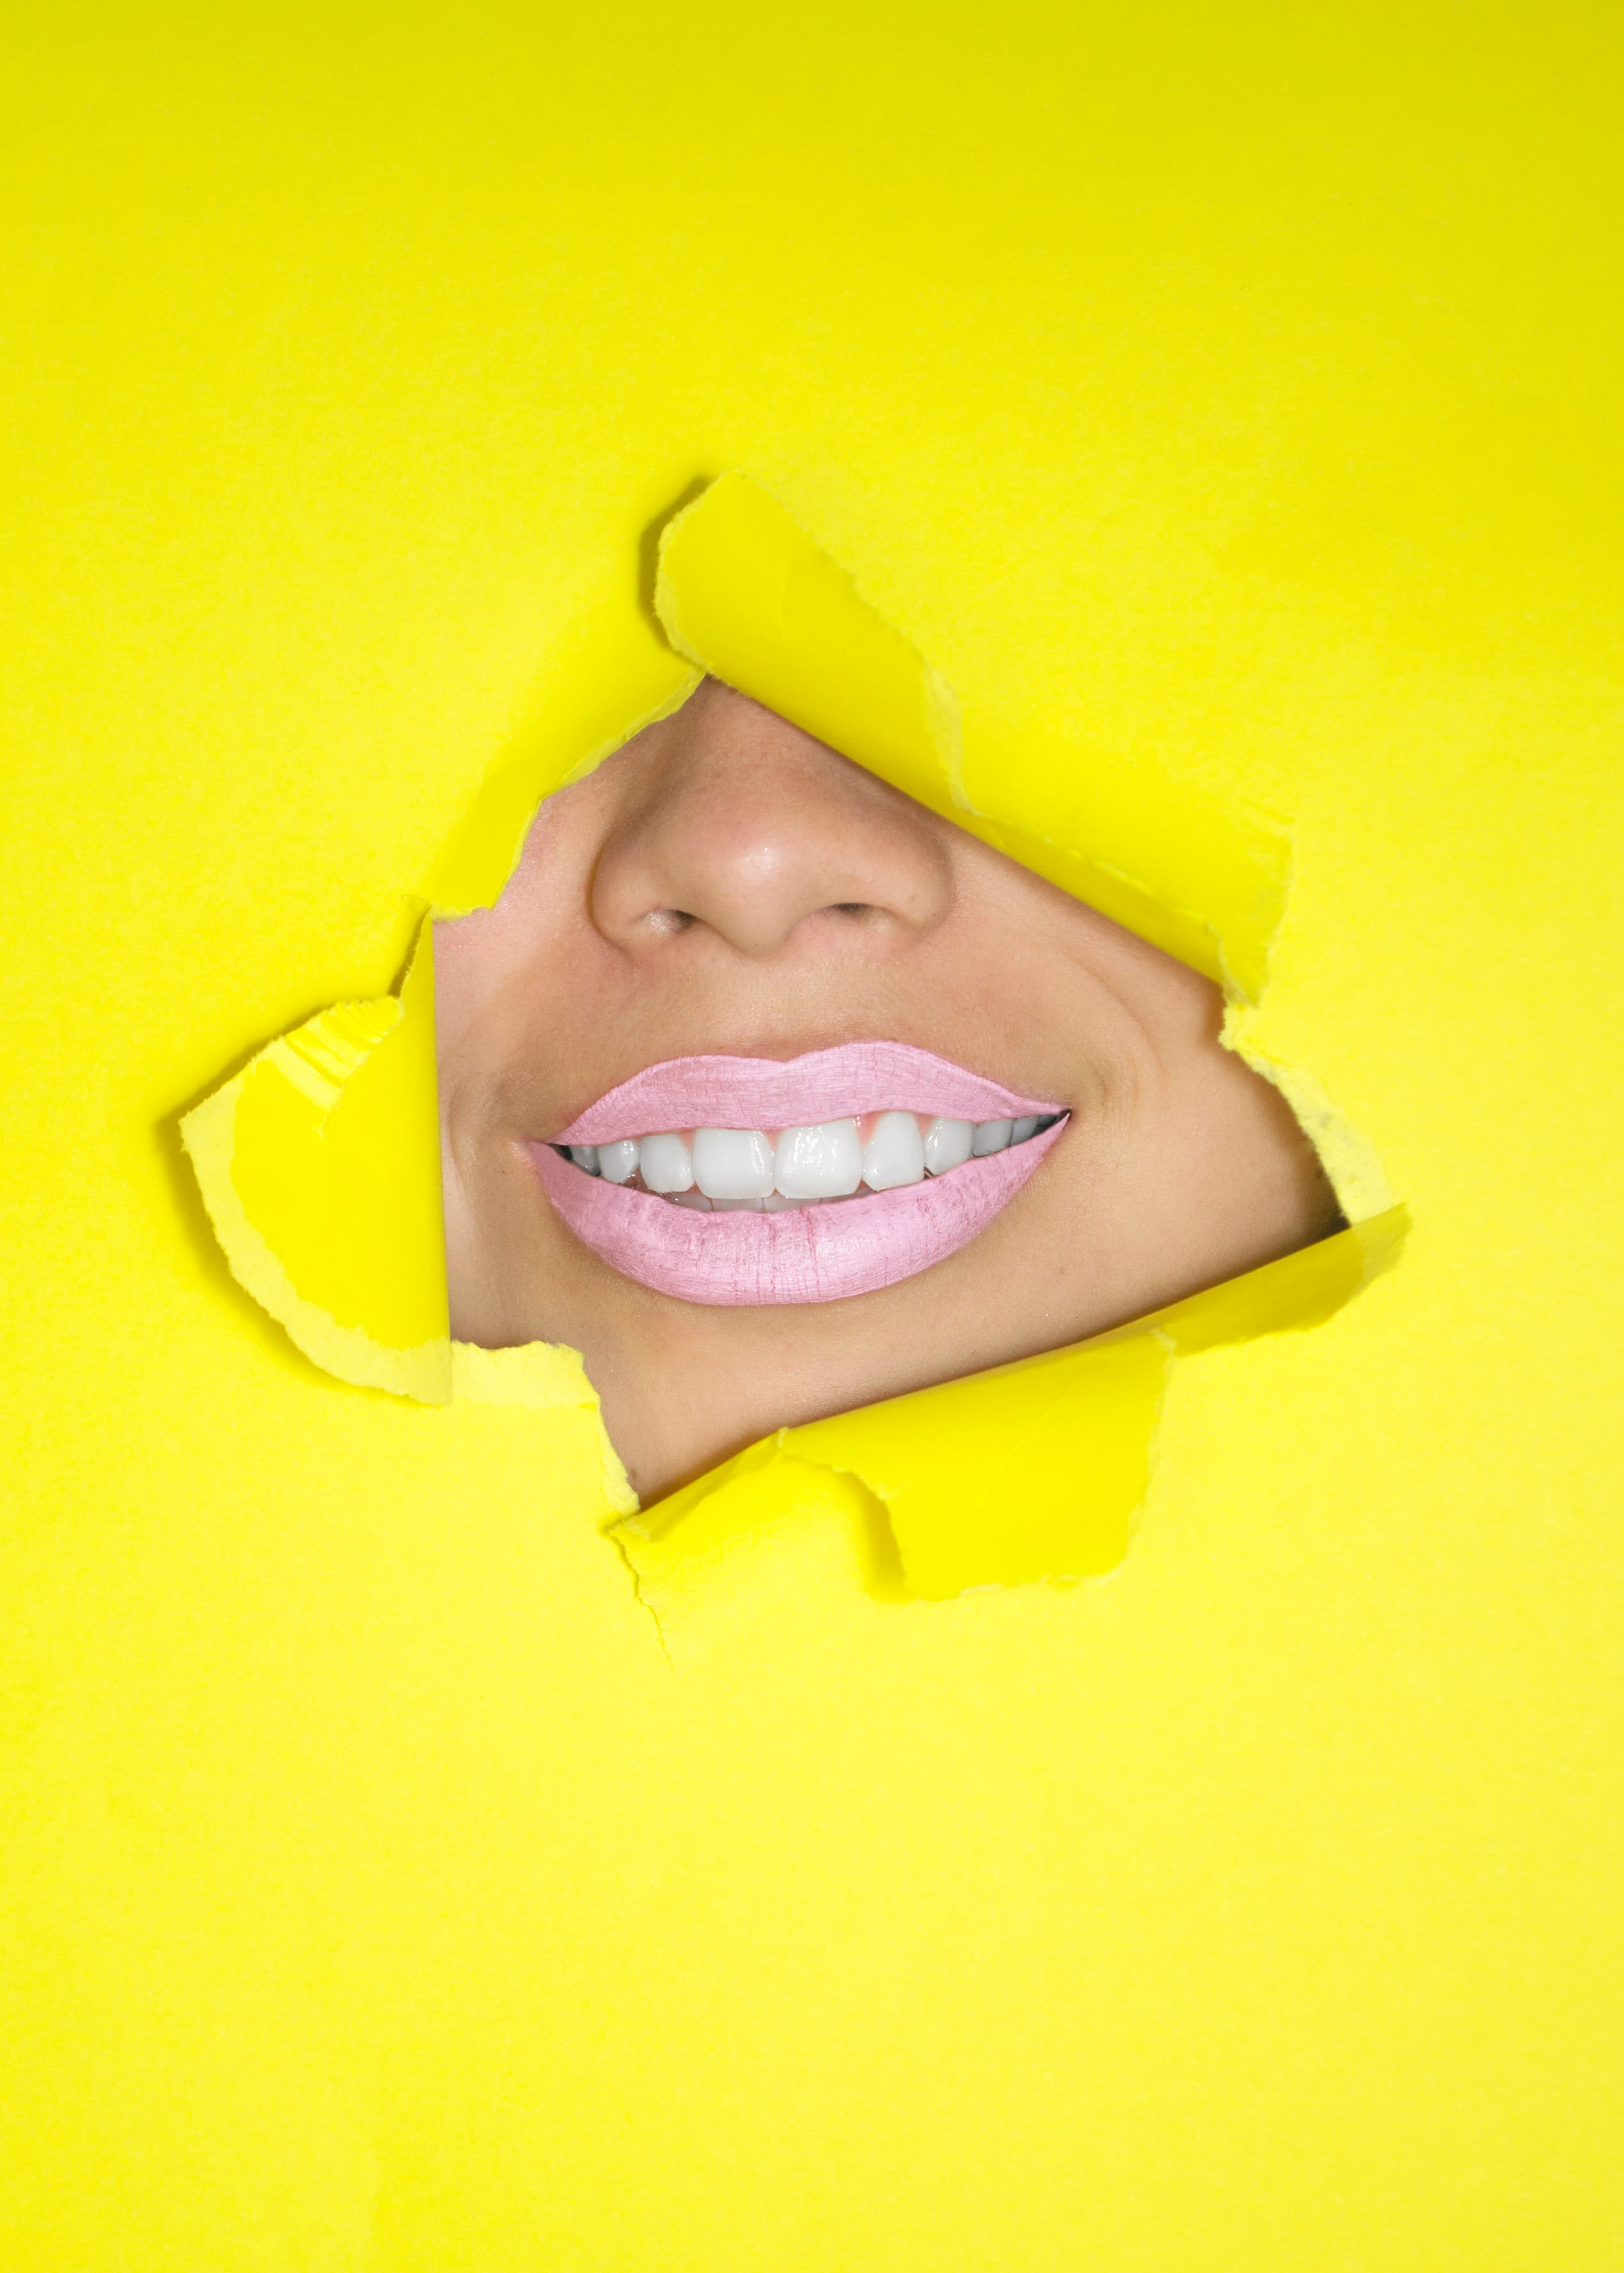 yellow background with mouth in middle woman smiling